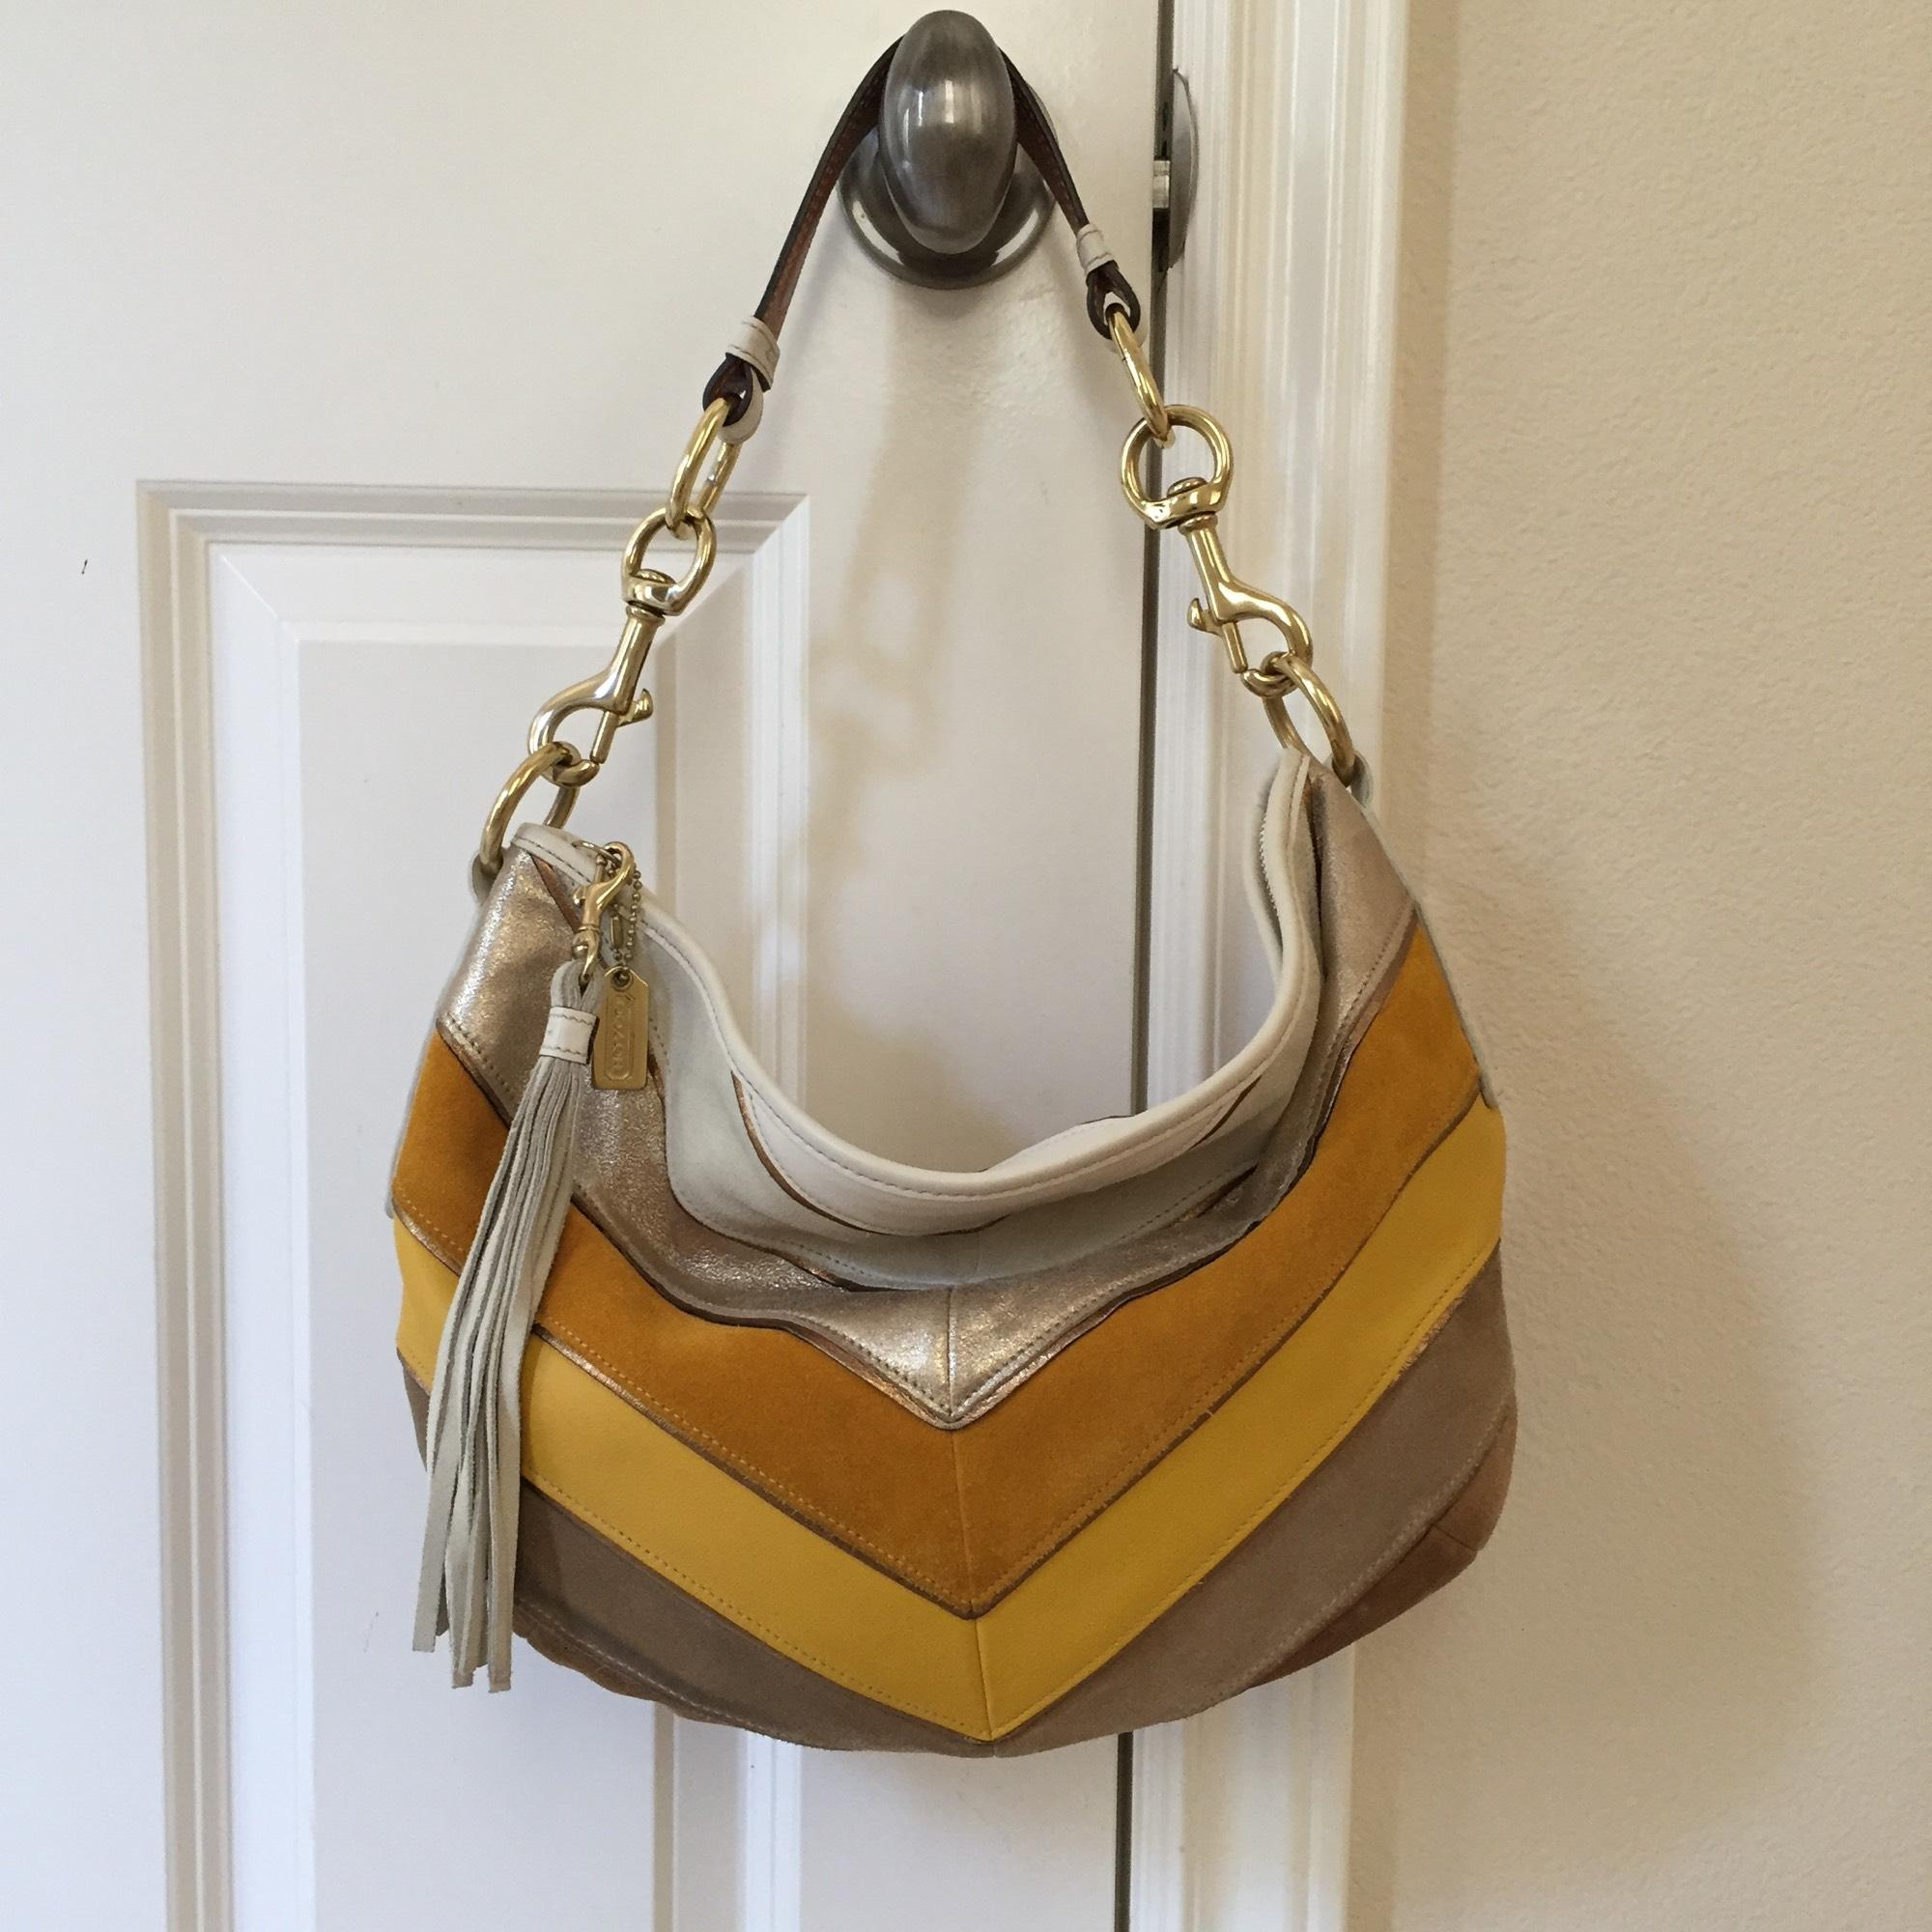 f2b7ba014f49 ... greece coach chevron ivory yellow brown leather hobo bag tradesy a366d  5f51b ...